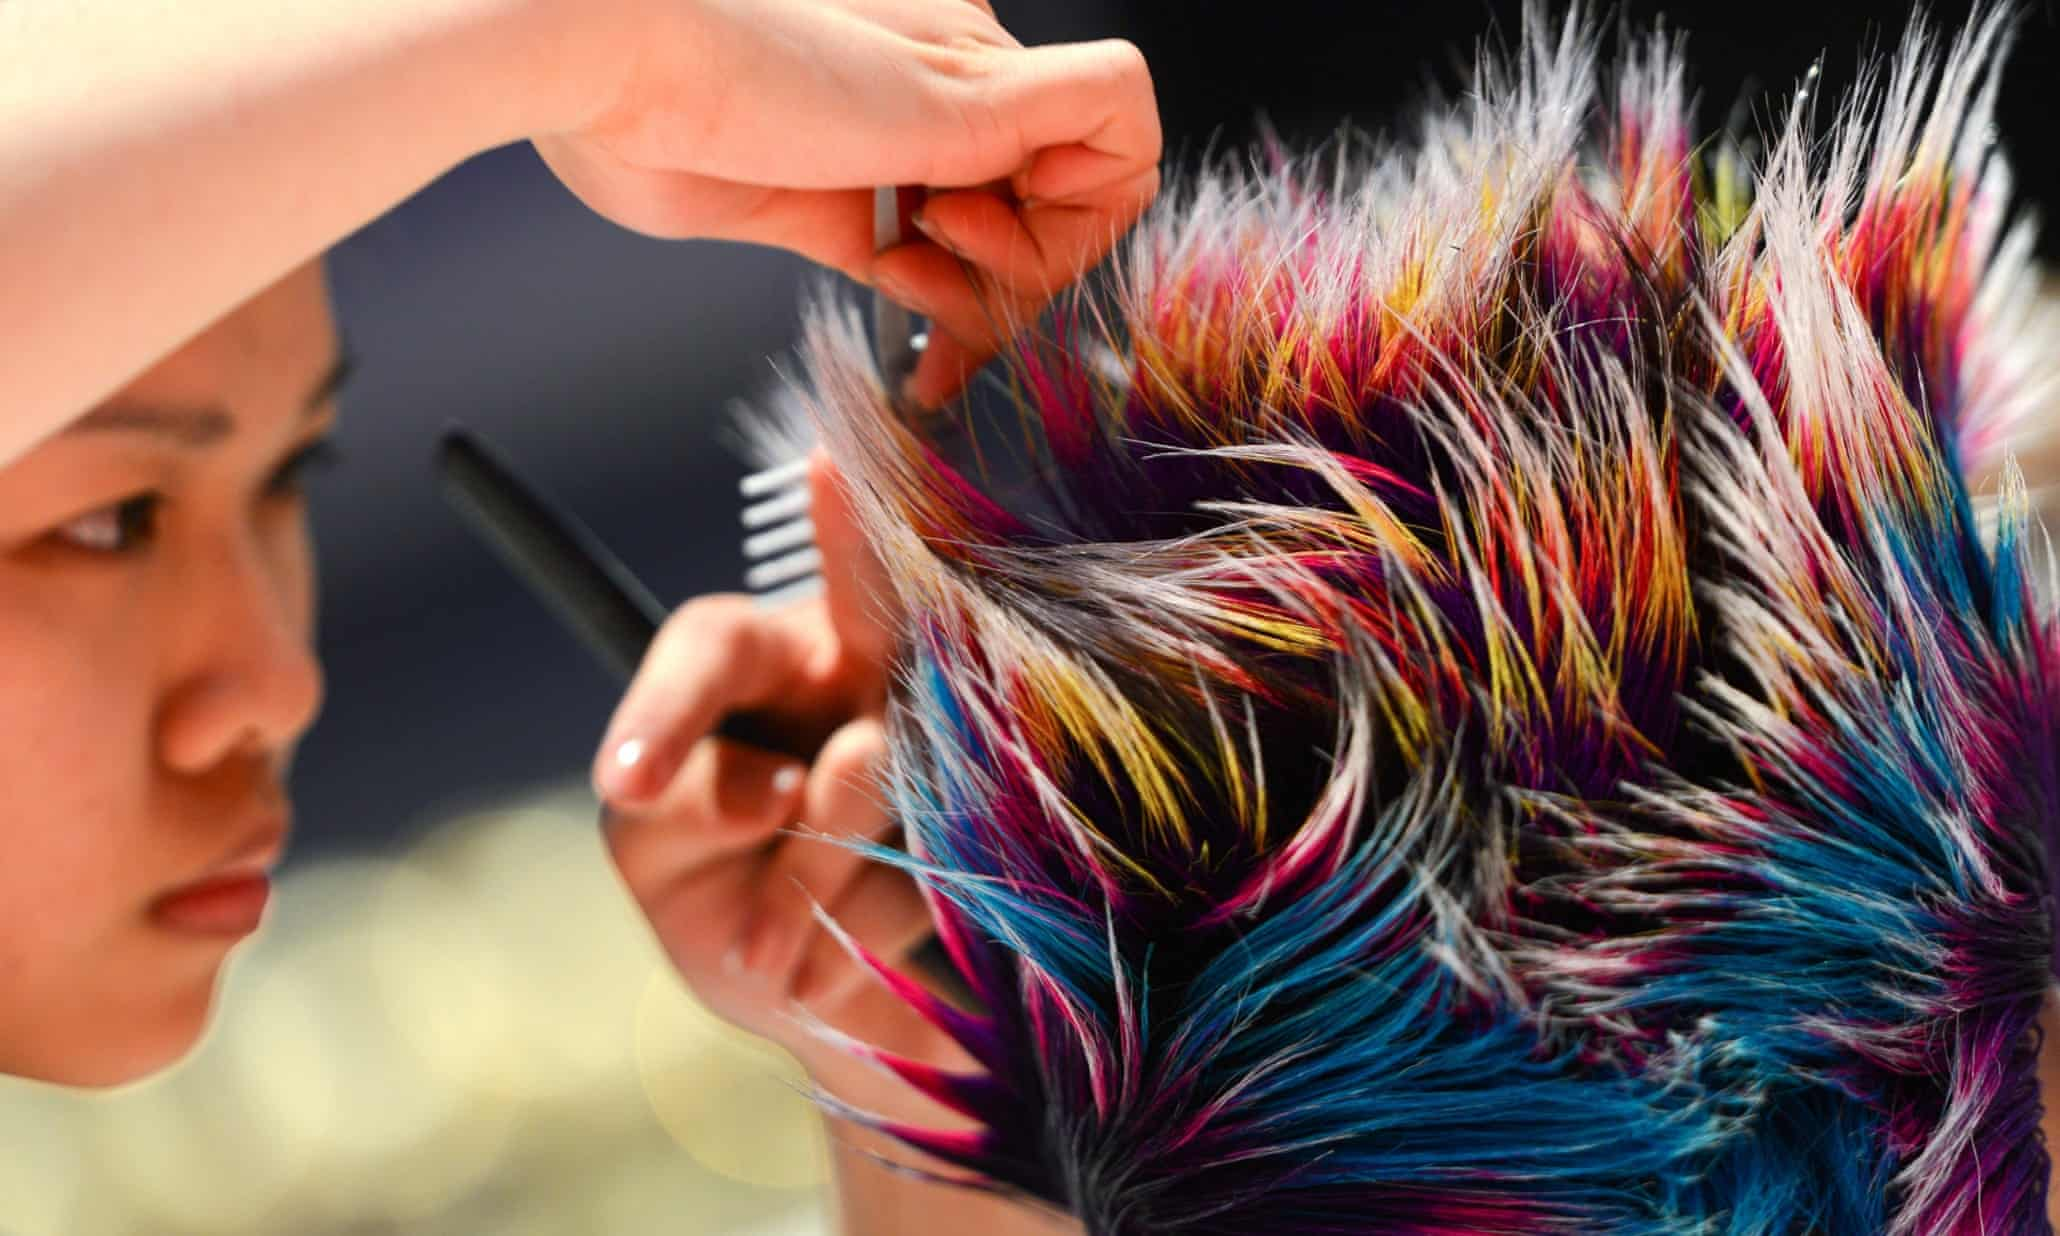 World Hairdressing Championships - in pictures